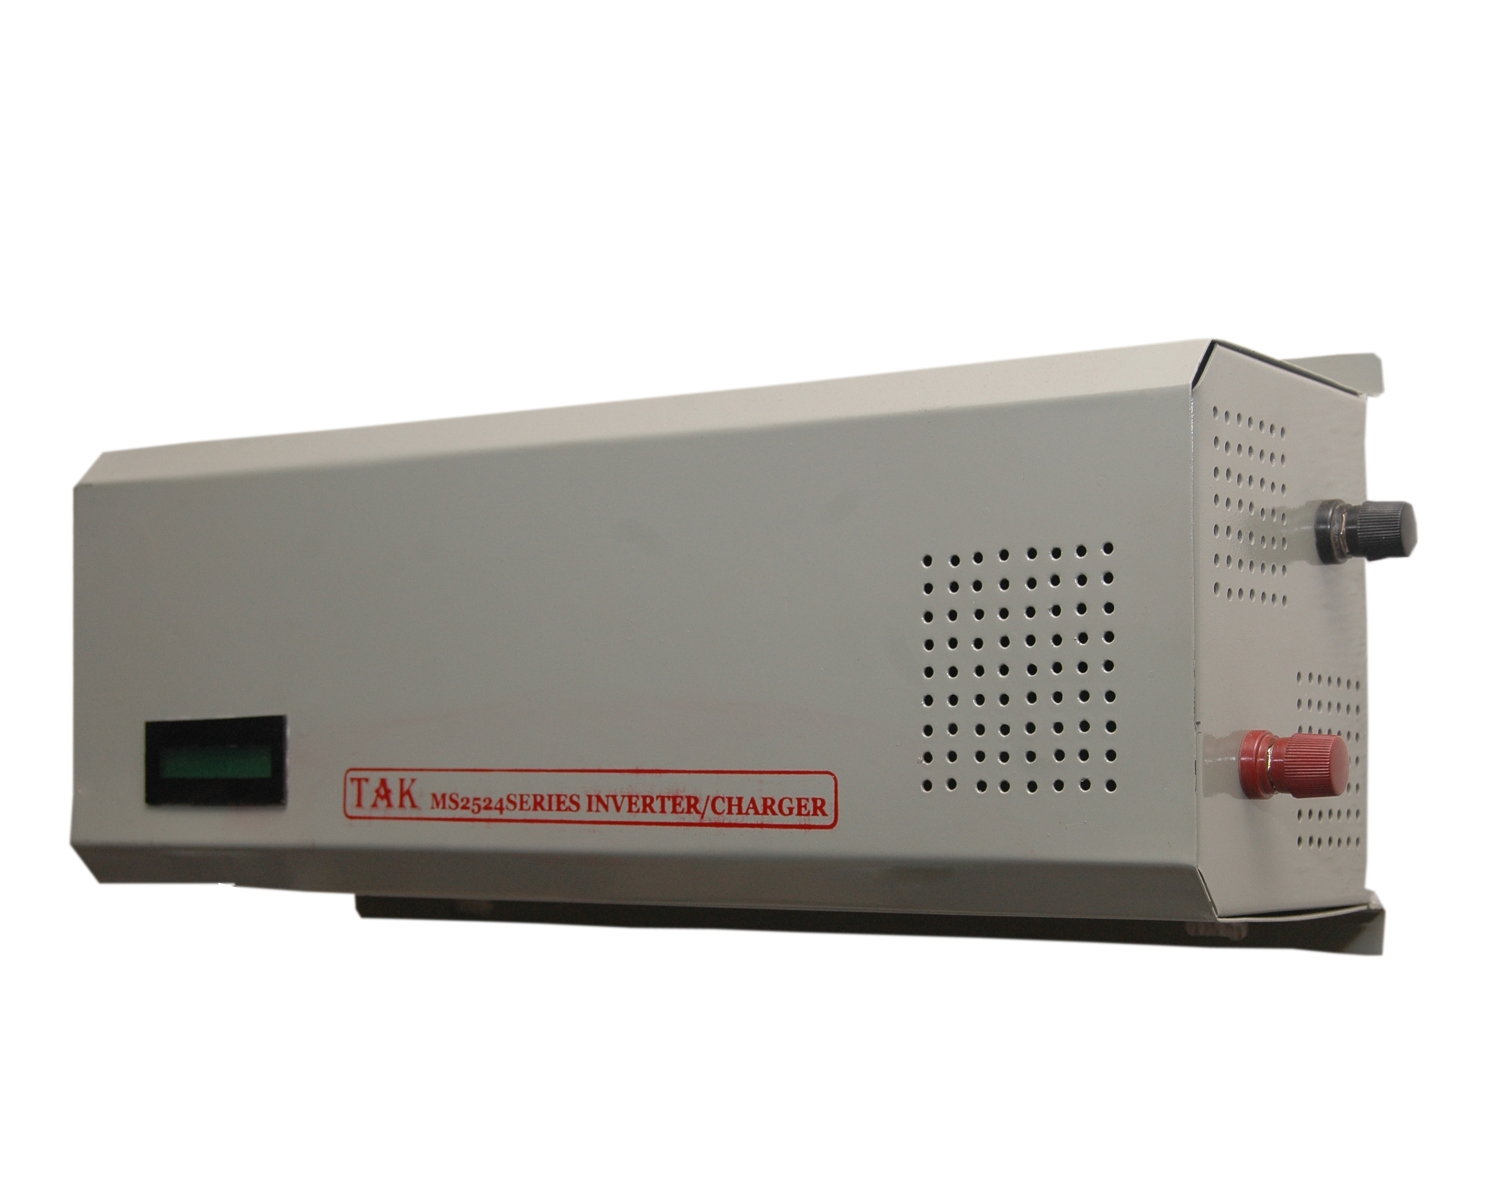 TAK ELECTRONICS - The Proudly Nigerian Inverter Maker : dspic